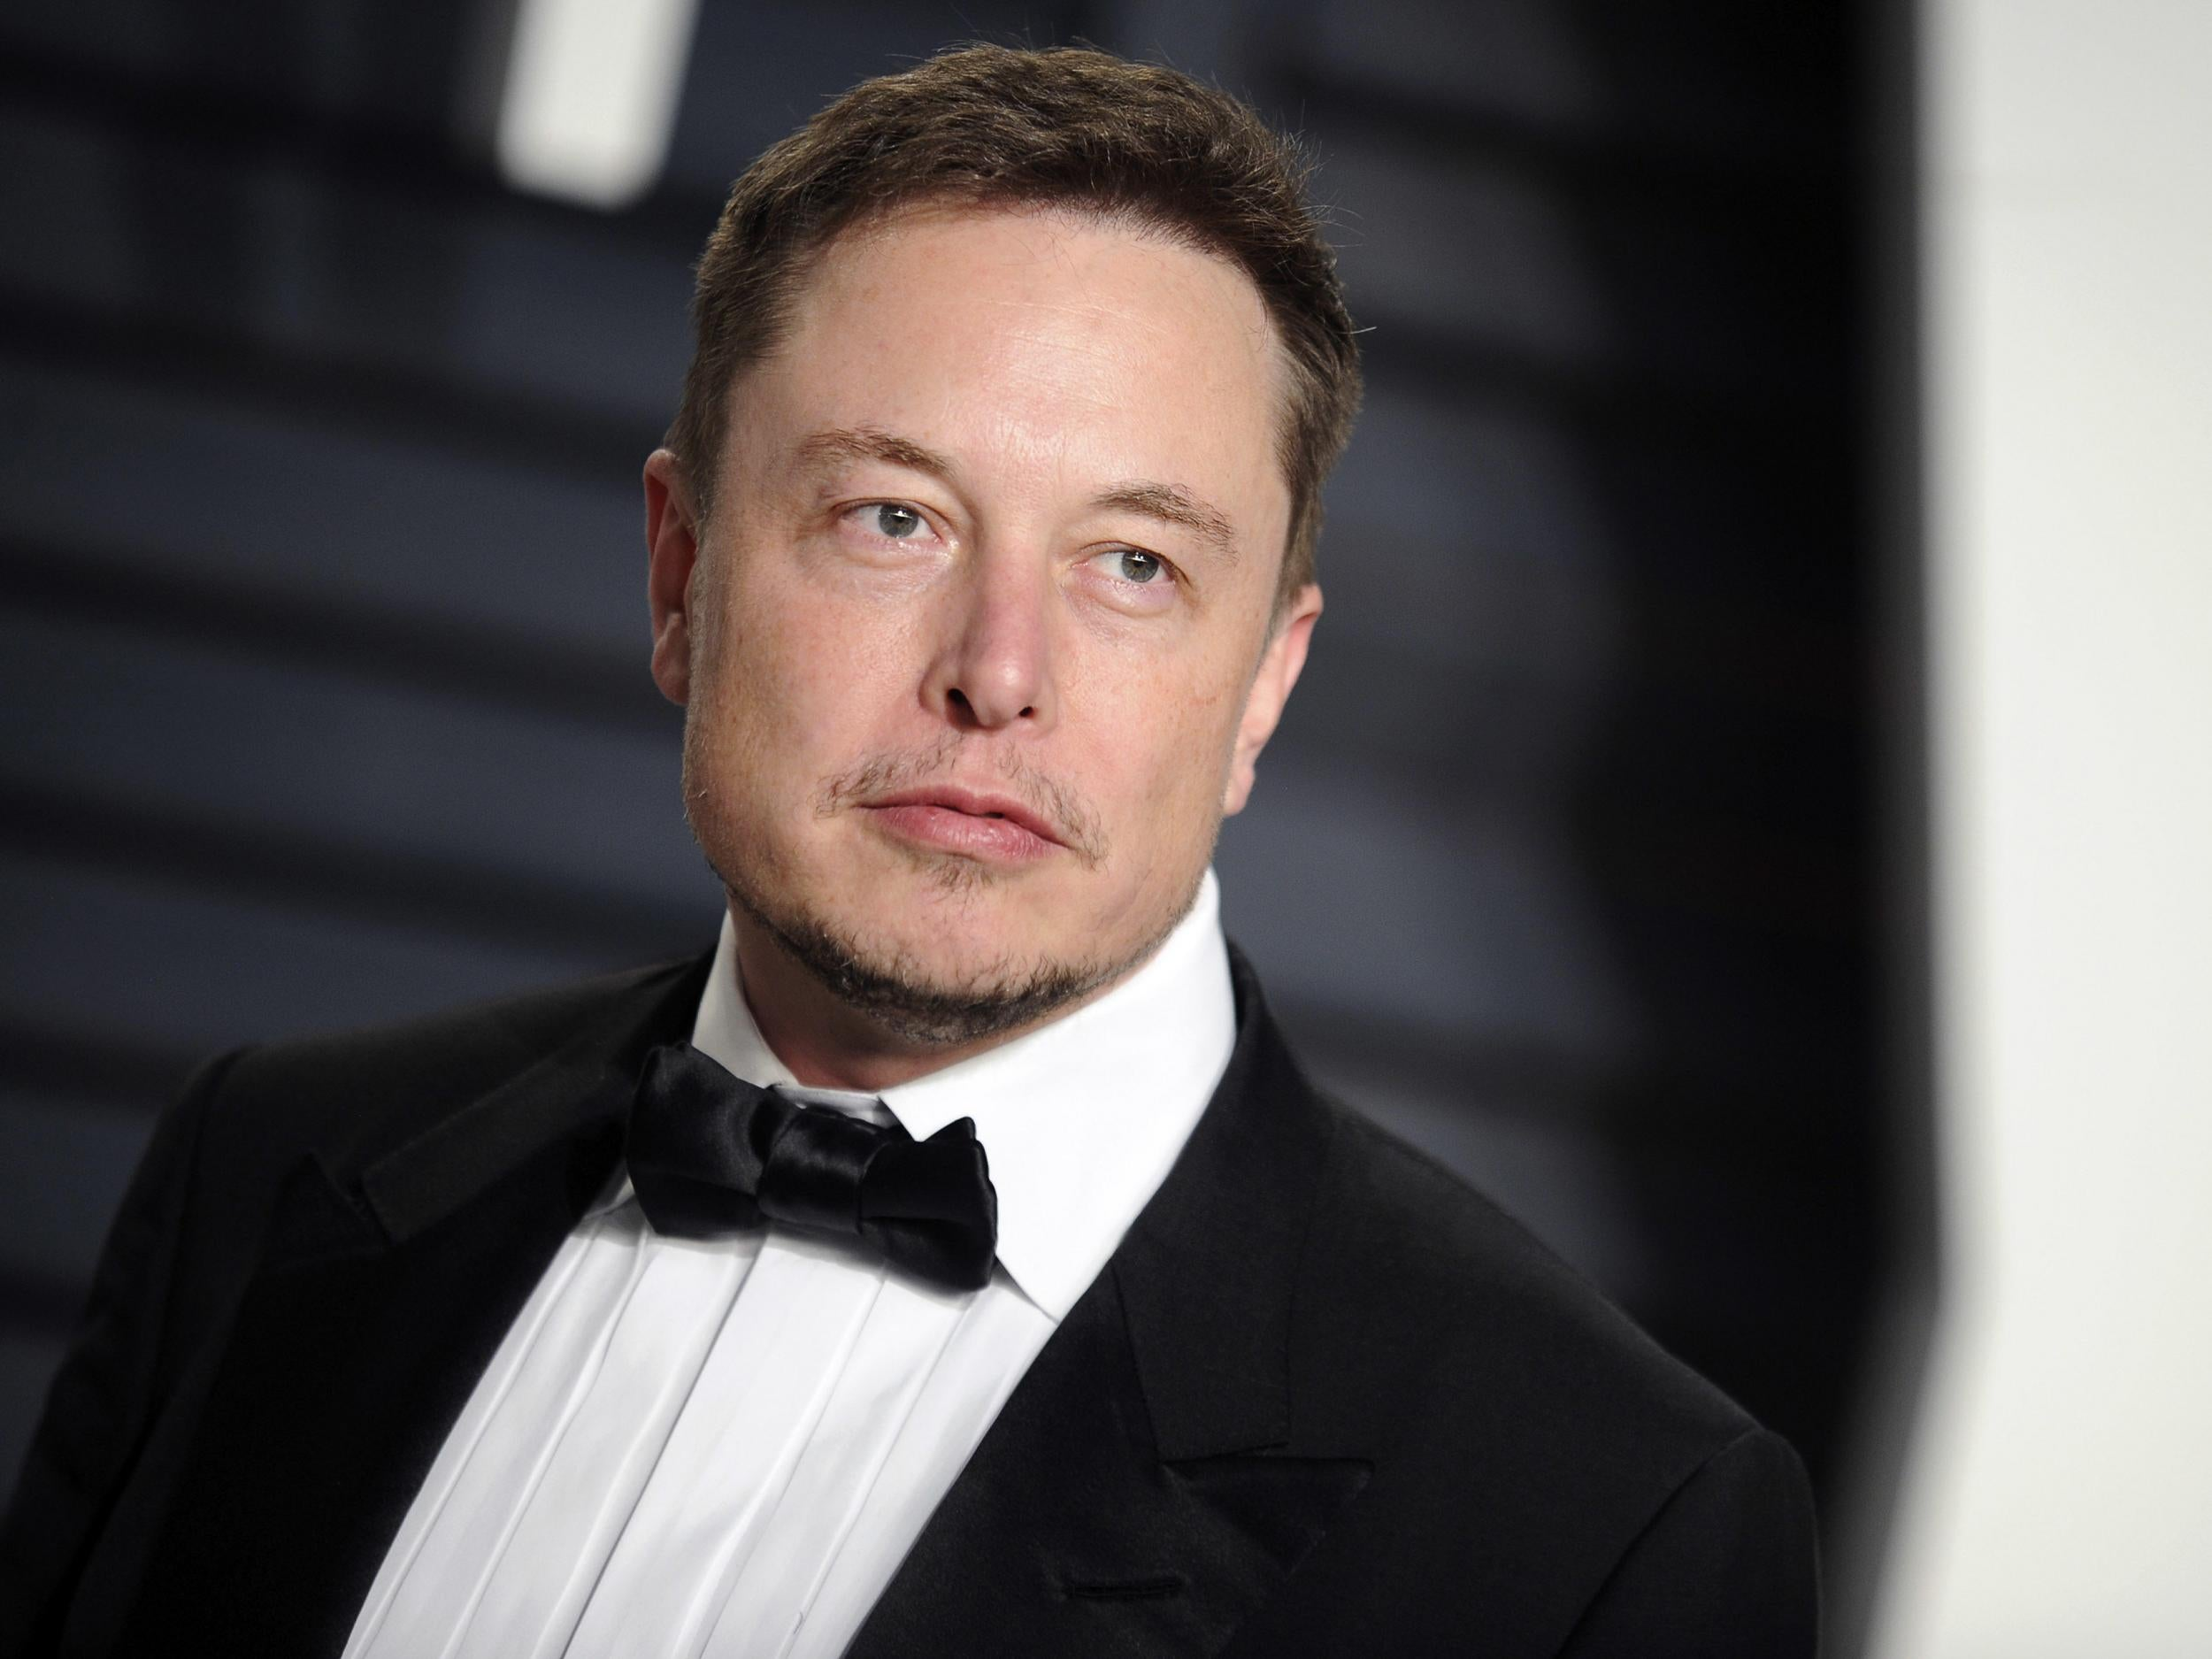 Elon Musk repeatedly breaks down in interview as he admits taking pills to sleep and explains bizarre Tesla tweet